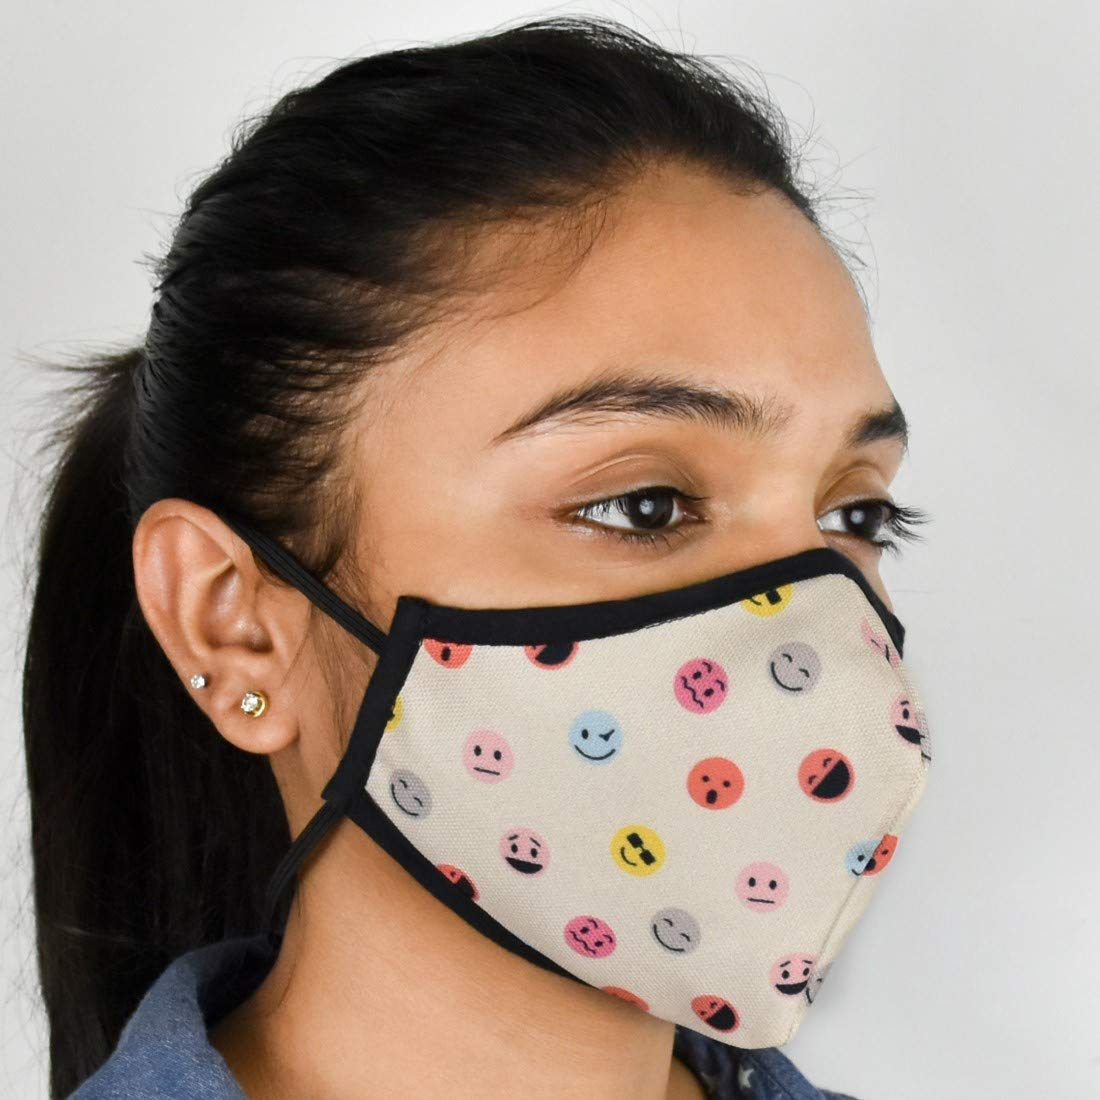 """Indigifts Pollution Mask For Adults Face Mask For Men/Women Designer Printed Anti Pollution Nose Mask for Dust Protection (Unisex, 4.5""""x5"""", 1 Piece) - Half Mouth Protection Washable Face Mask"""